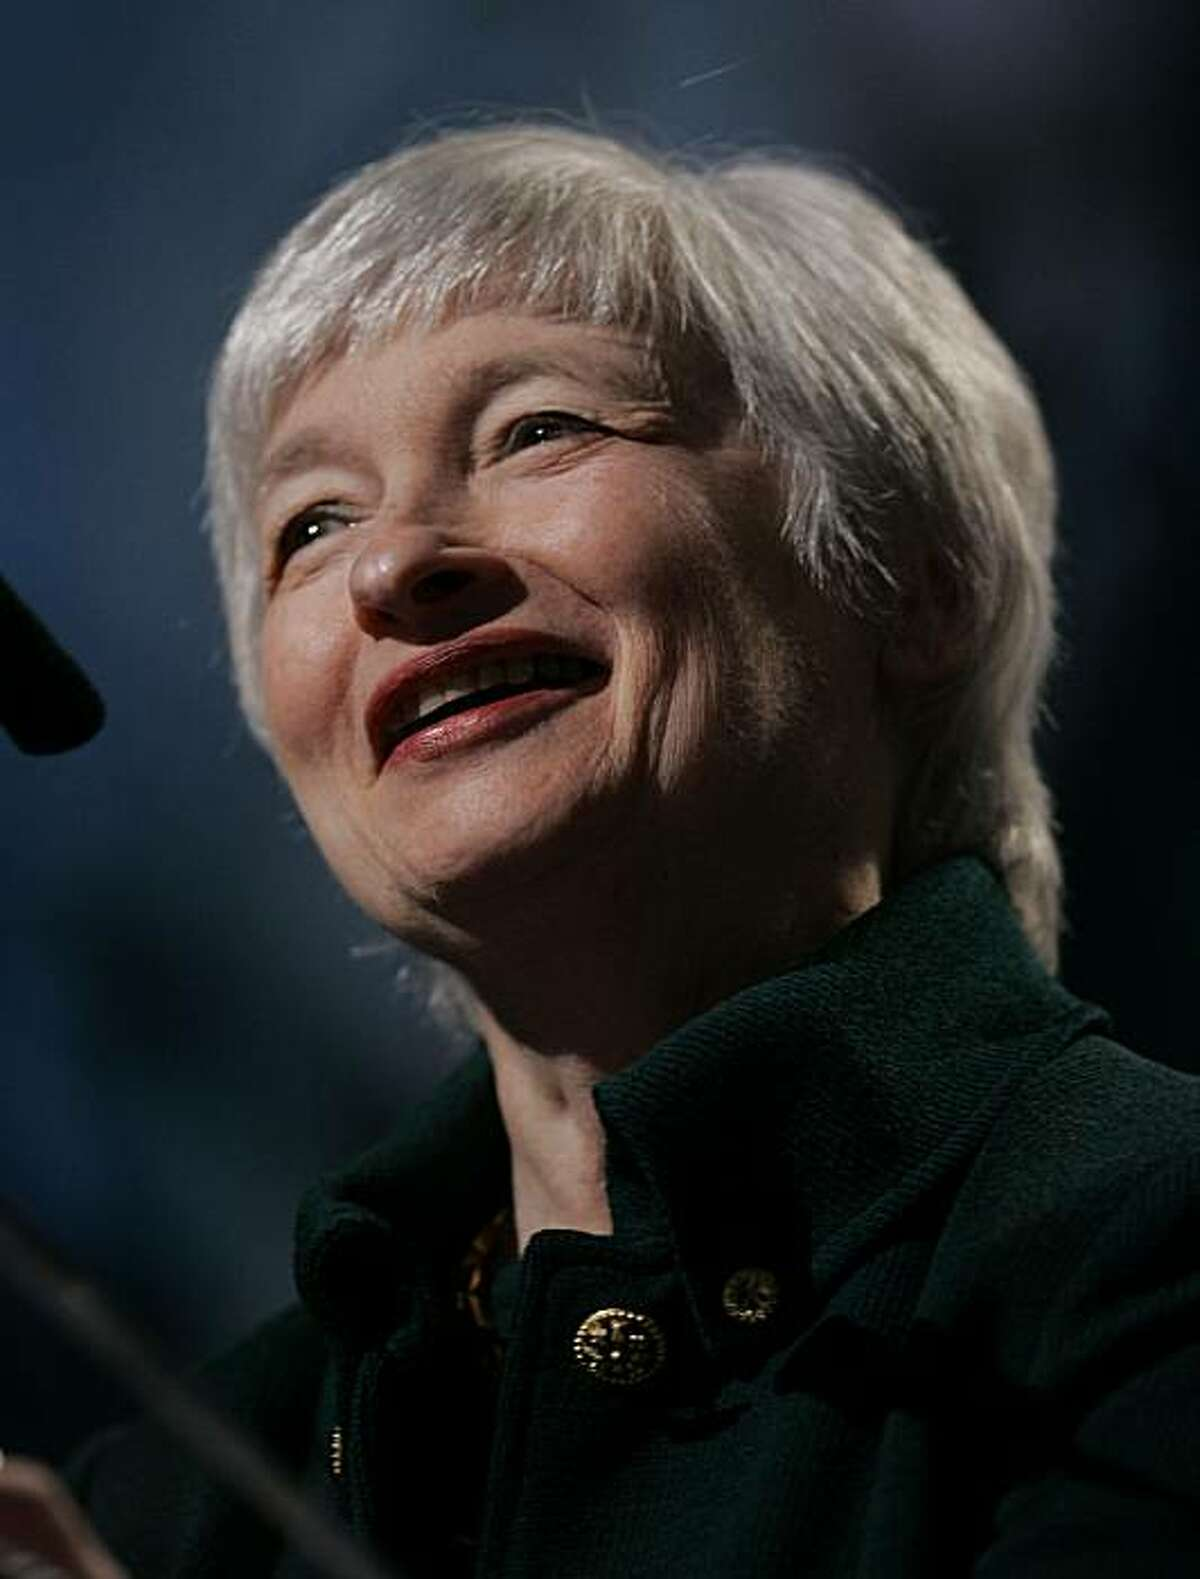 """Janet L. Yellen, President and CEO of the Federal Reserve Bank of San Francisco, speaks about foreclosures to the Bay Area Council Outlook Conference in Alameda, Calif., Wednesday, April 16, 2008. Yellen said the mortgage crisis and financial services turmoil are likely to be a """"major drag"""" on the national economy into 2009. (AP Photo/Paul Sakuma)"""